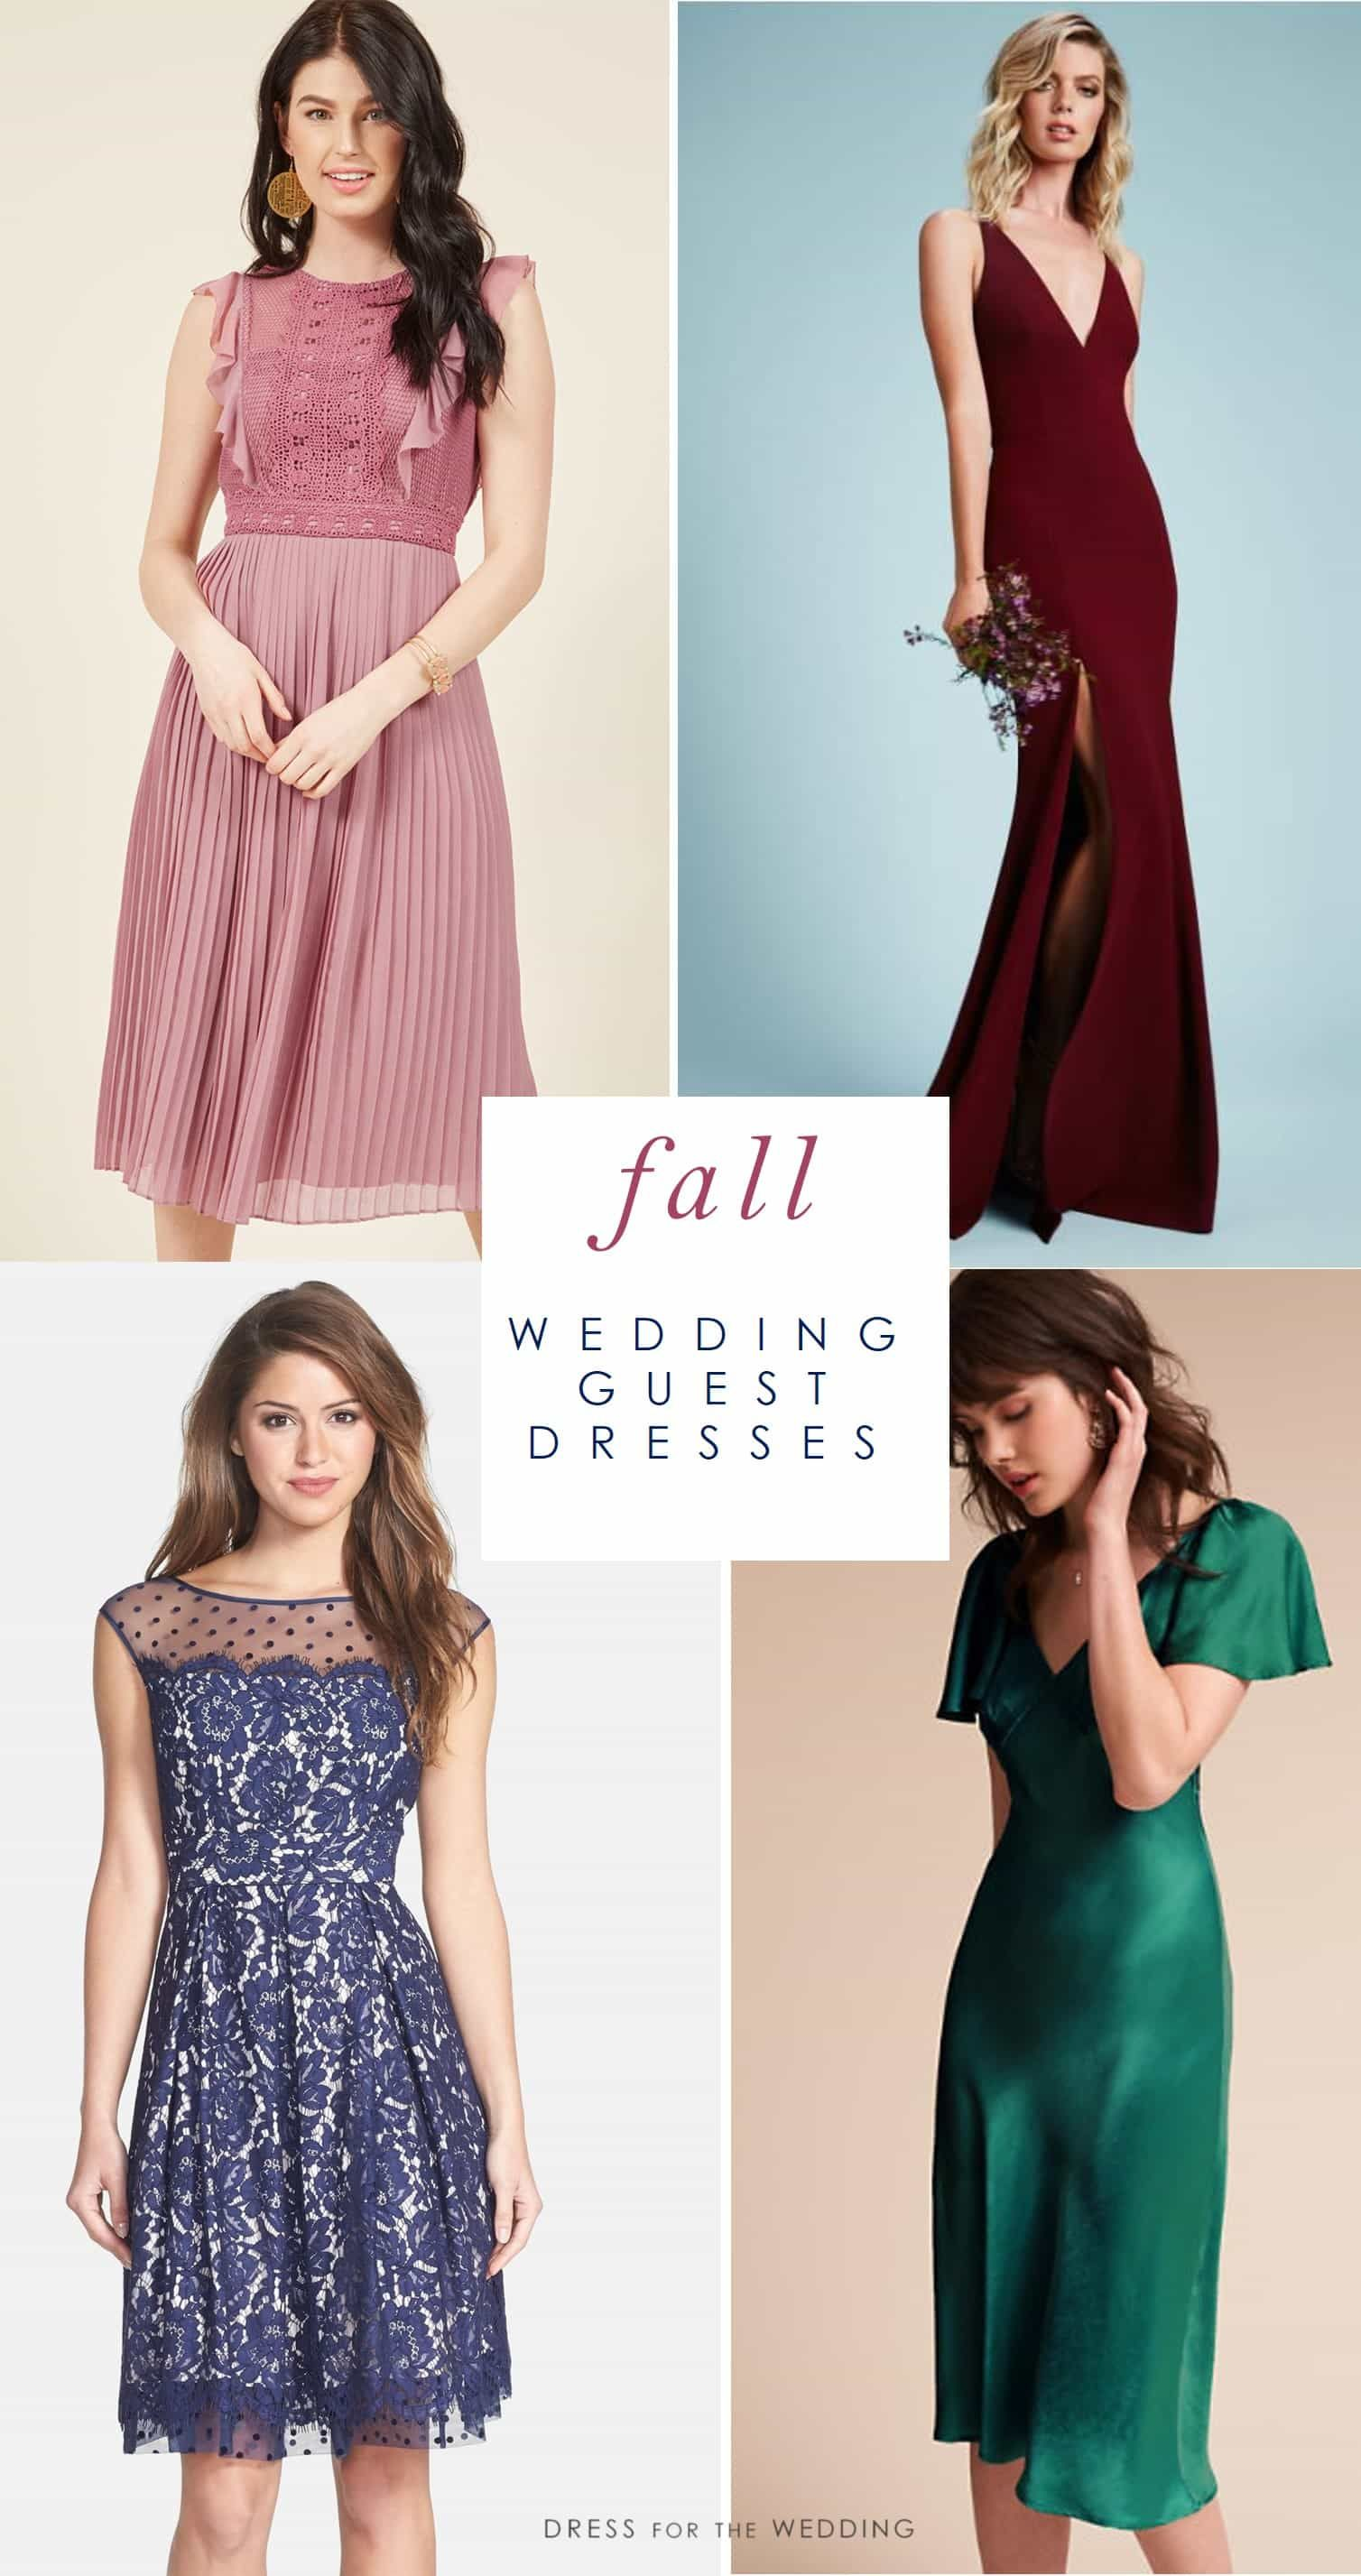 Fall Wedding Guest Dresses To Wear To A Fall Wedding Autumn Styles For Wedding Guests Wedding Attire Guest Wedding Guest Outfit Fall Fall Wedding Guest Dress